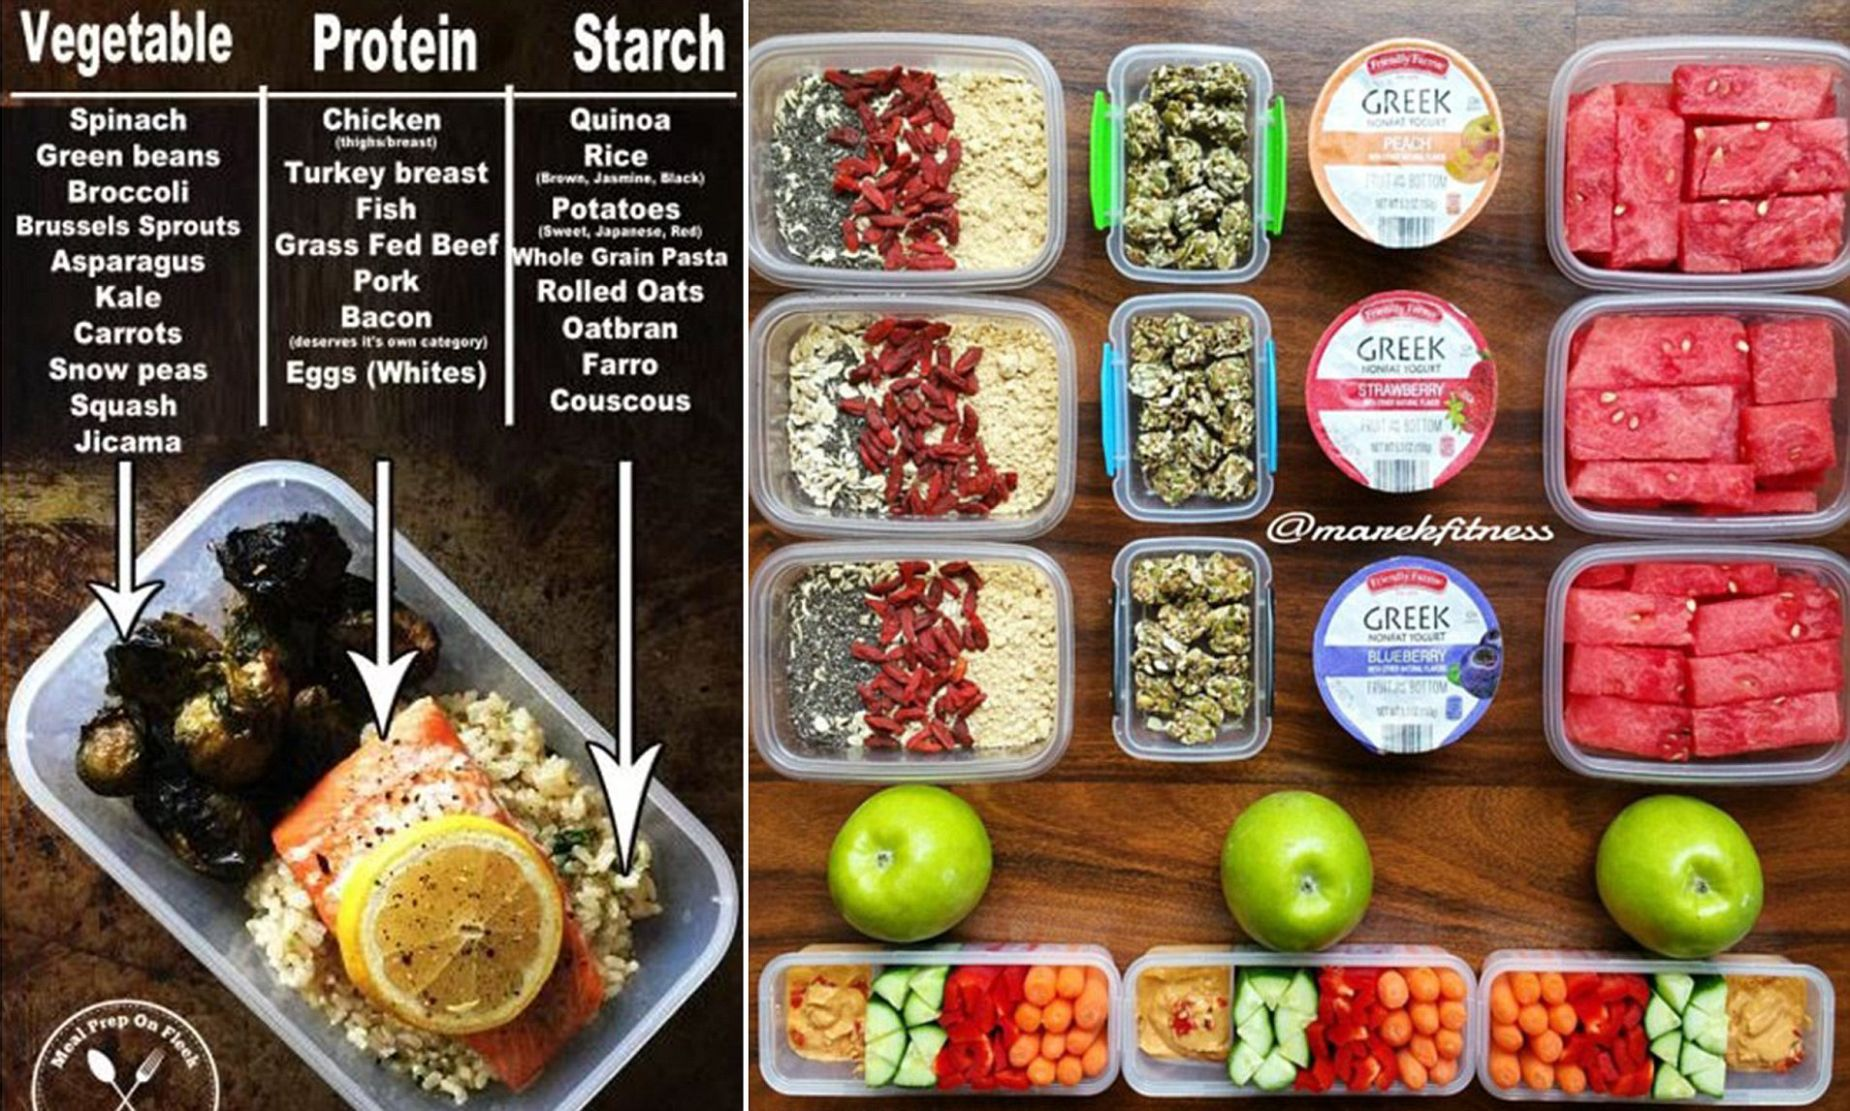 The perfect meal prep foods for weight loss revealed | Daily Mail ...